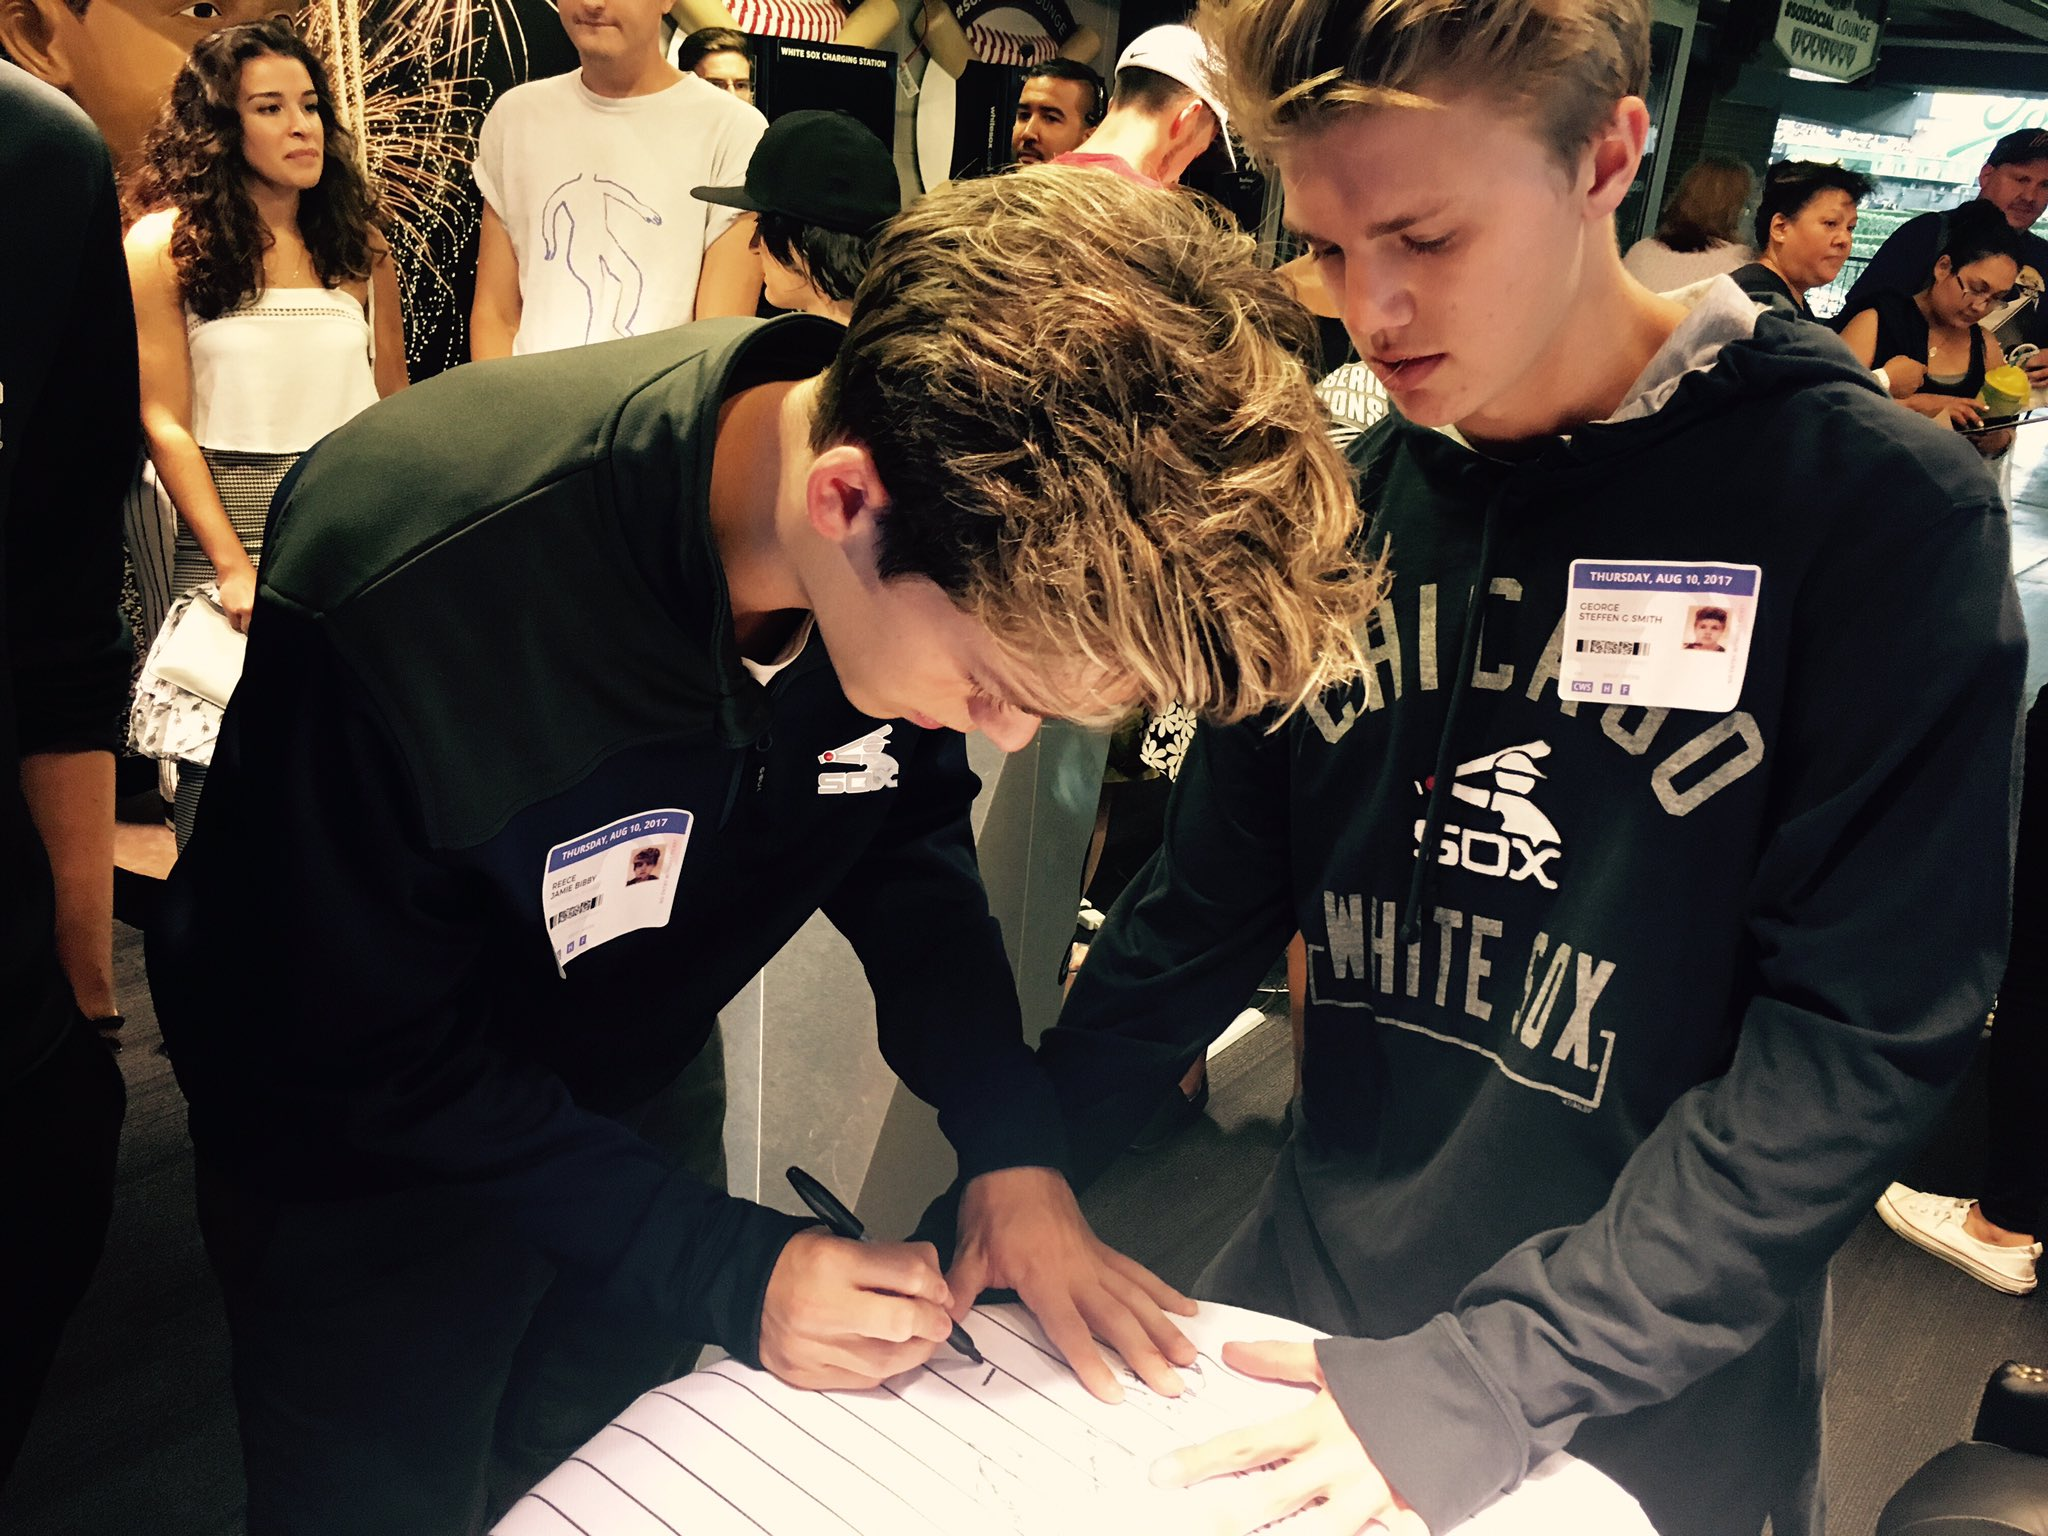 Thank you @NewHopeClub for stopping by our #SoxSocial Lounge! https://t.co/uGZfyqJBF5